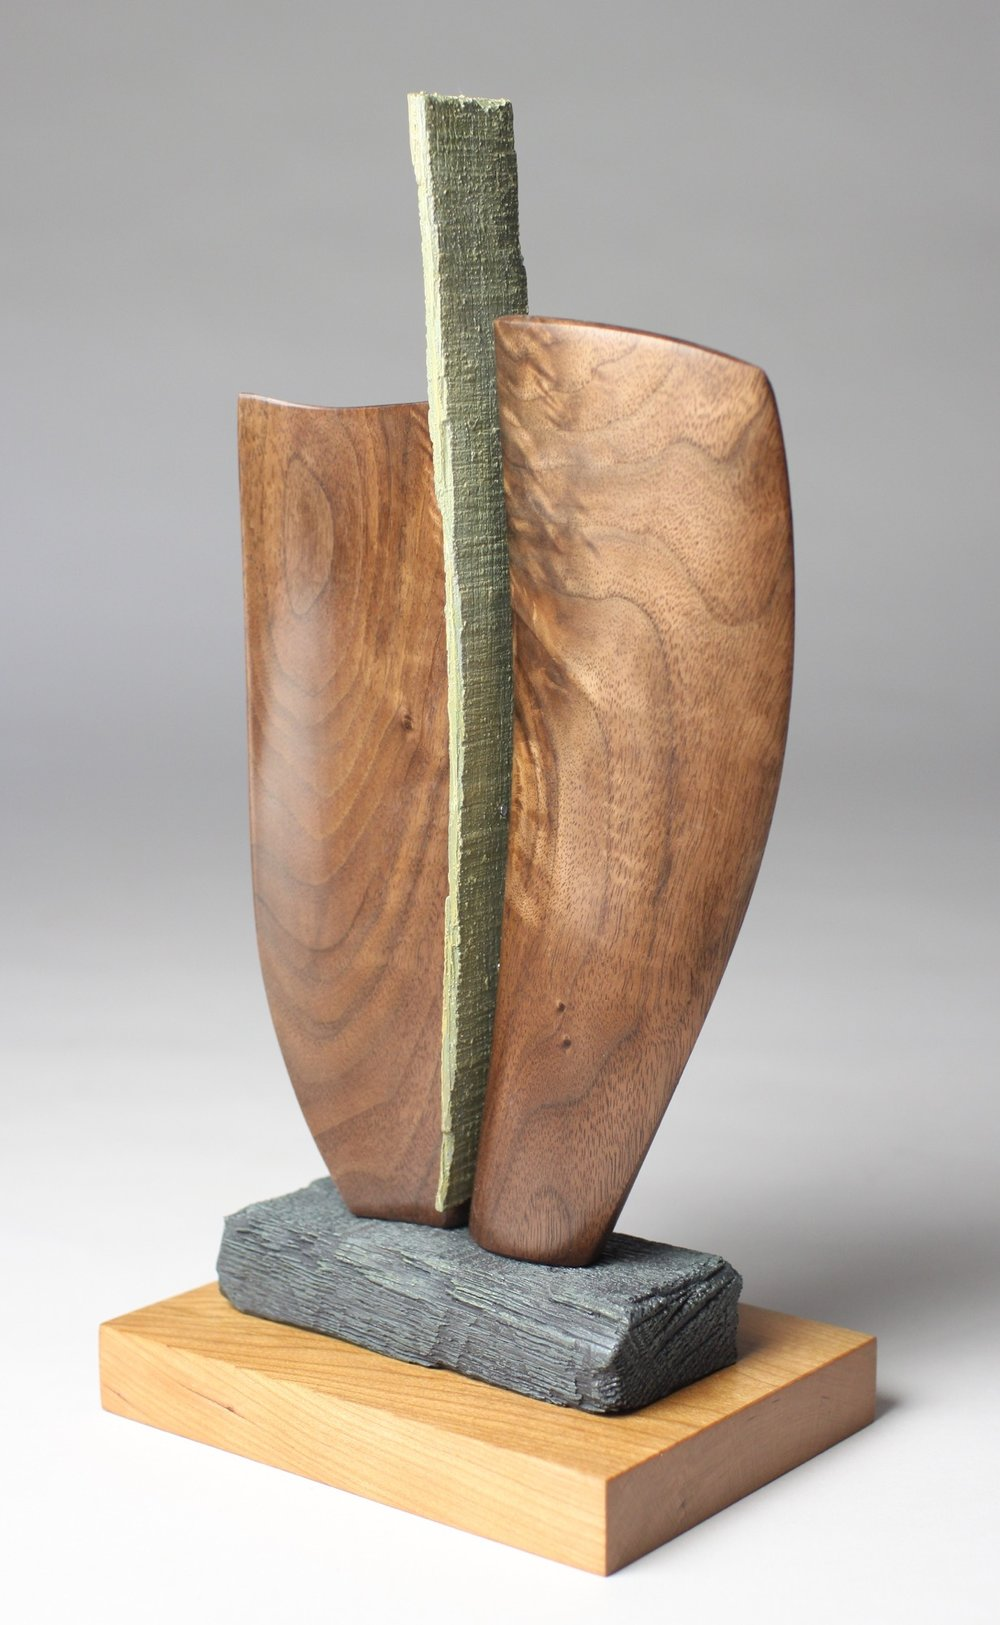 Sculpture #2 (View of Front)